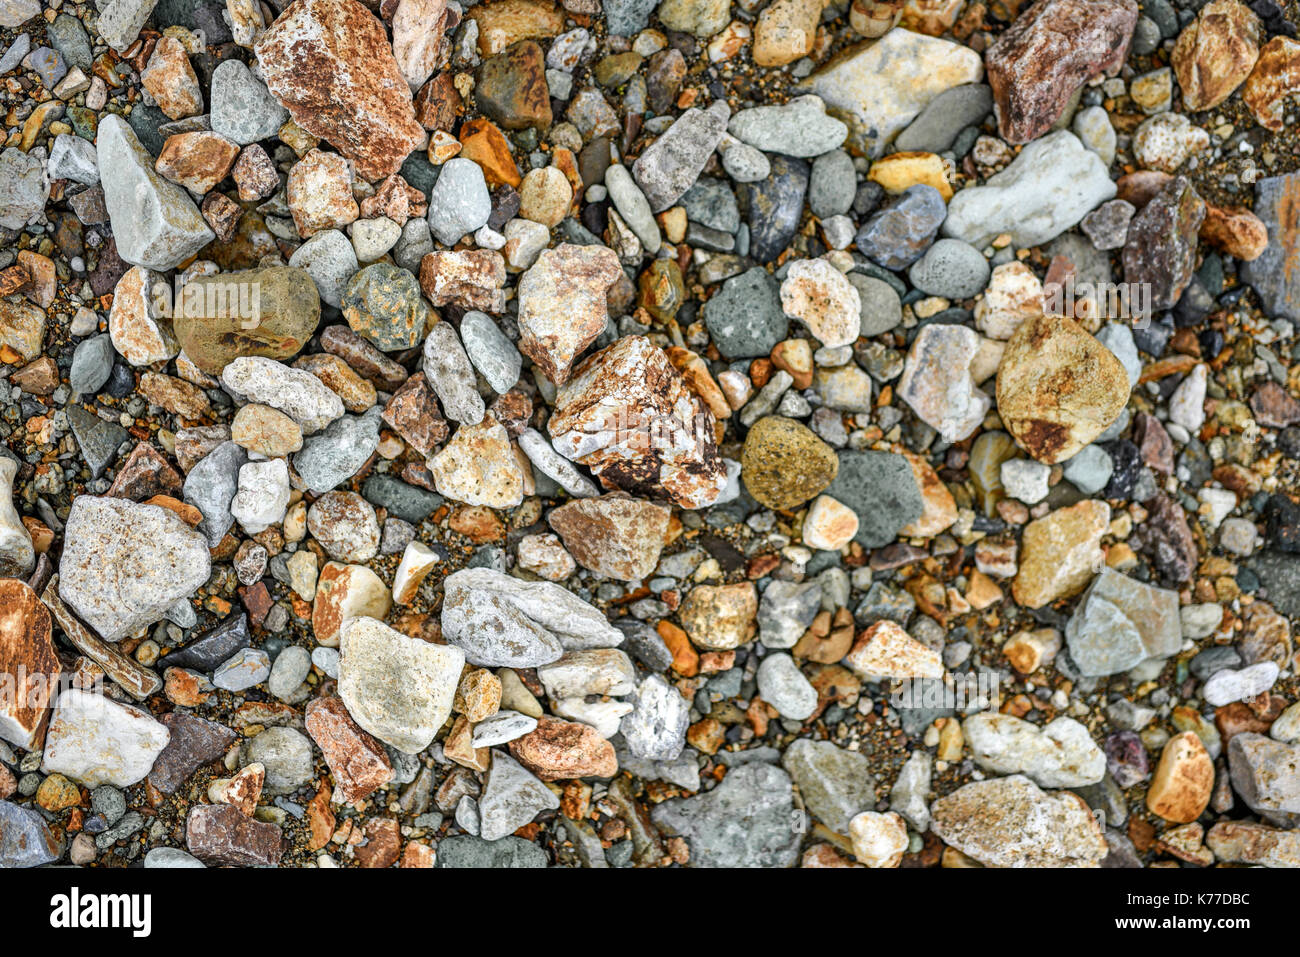 Texture of different sizes of colored stones, Iceland. - Stock Image